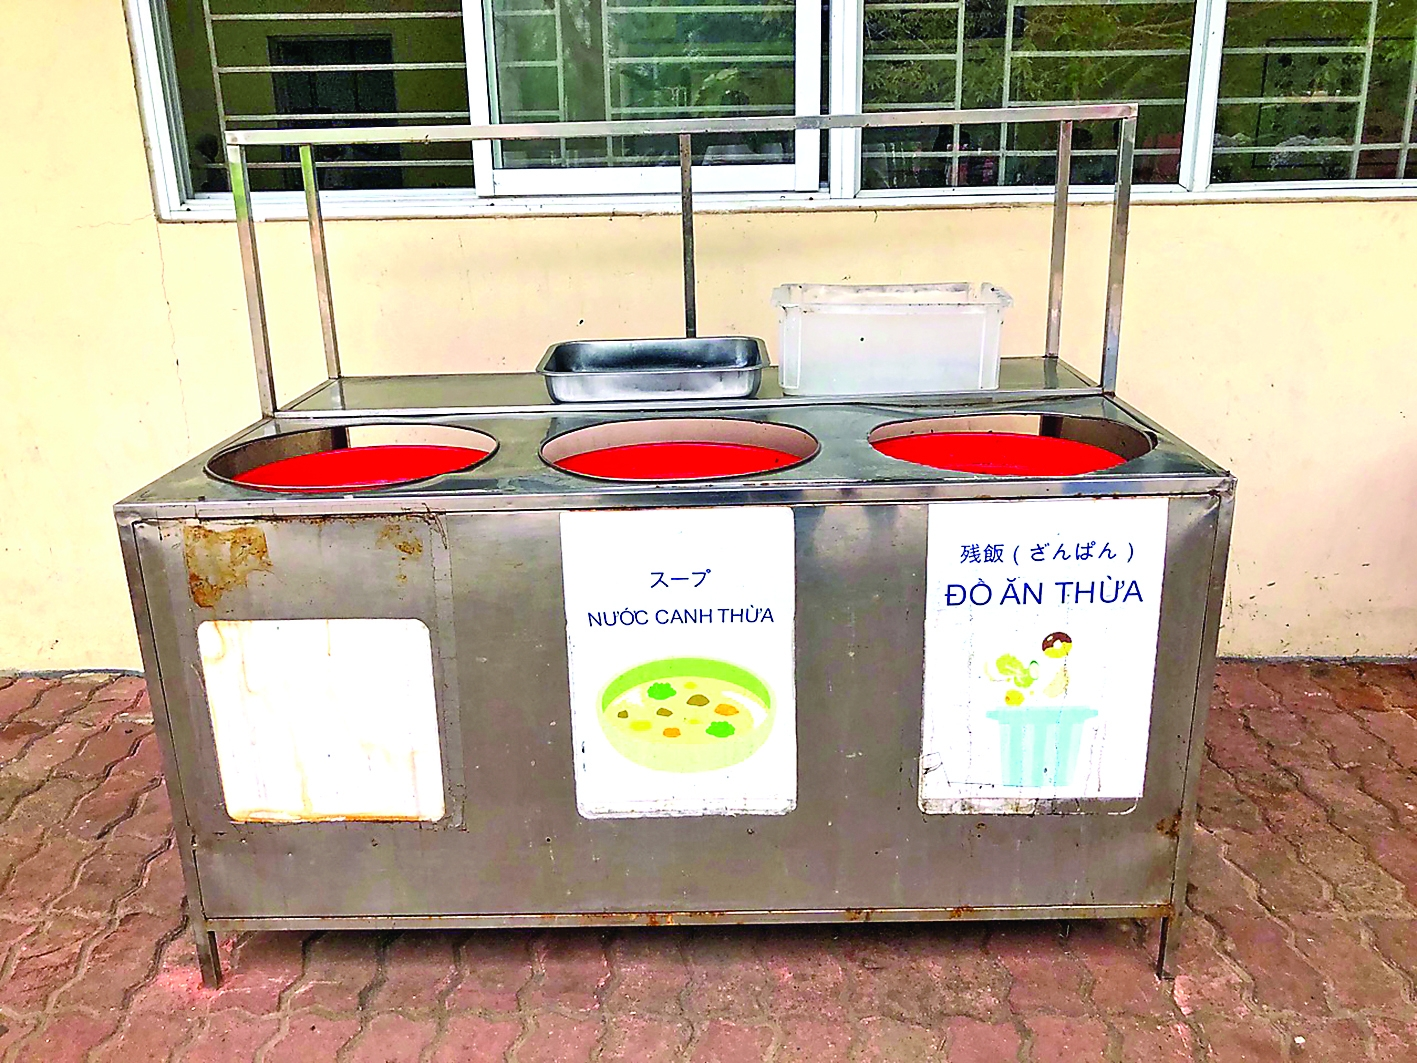 seeking solutions for plastic waste problem